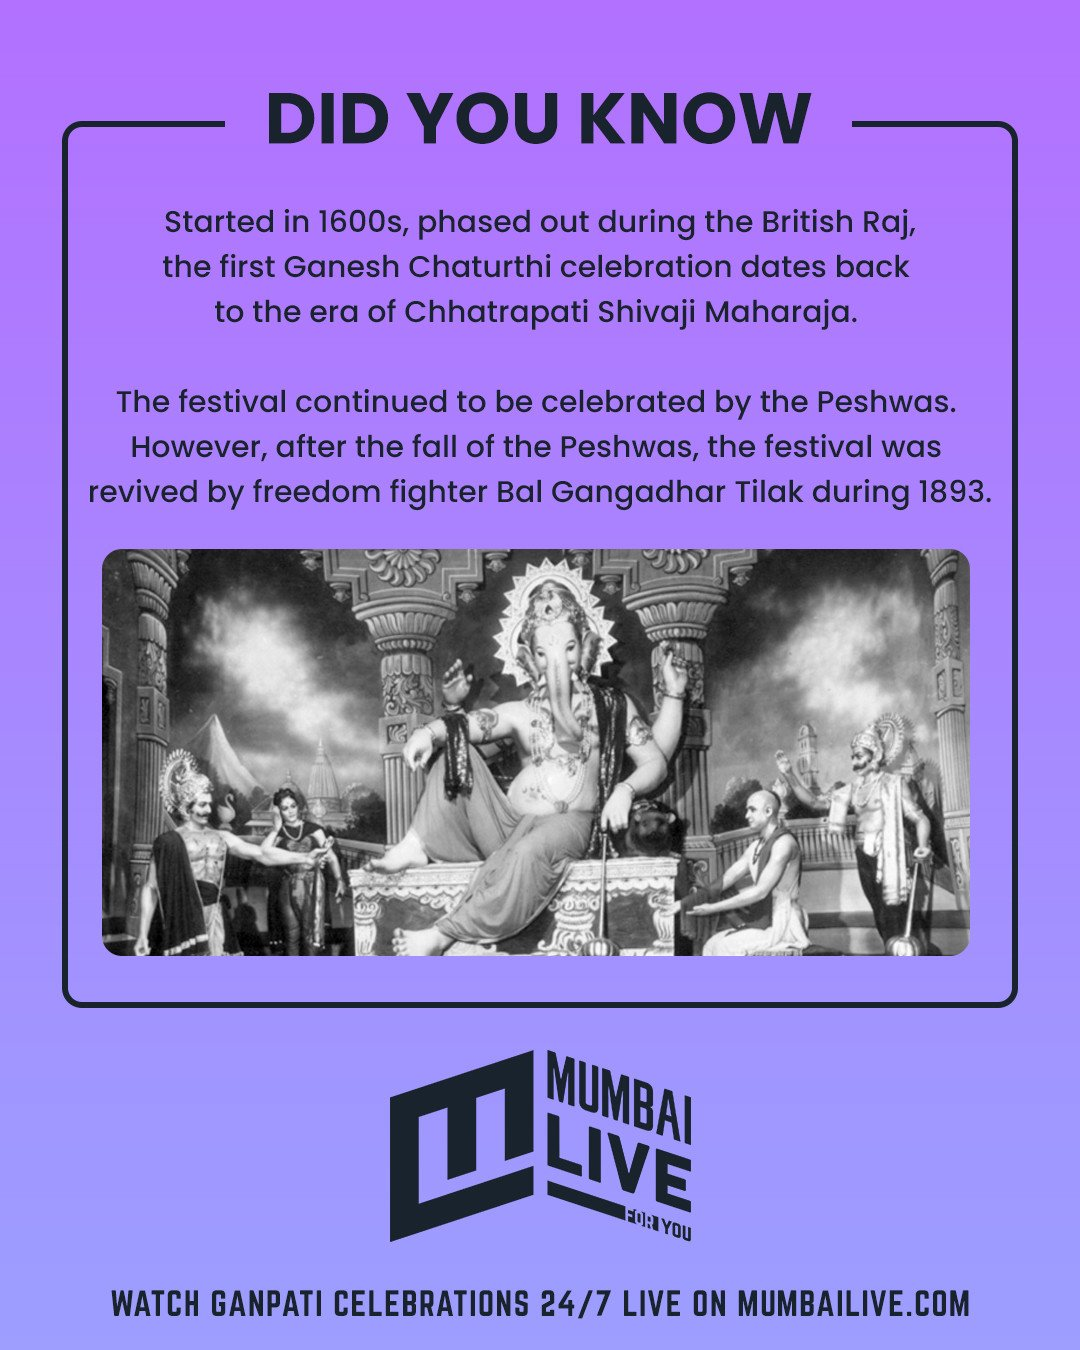 Ganesh Chaturthi: Did you know the celebrations started back in 1600s?